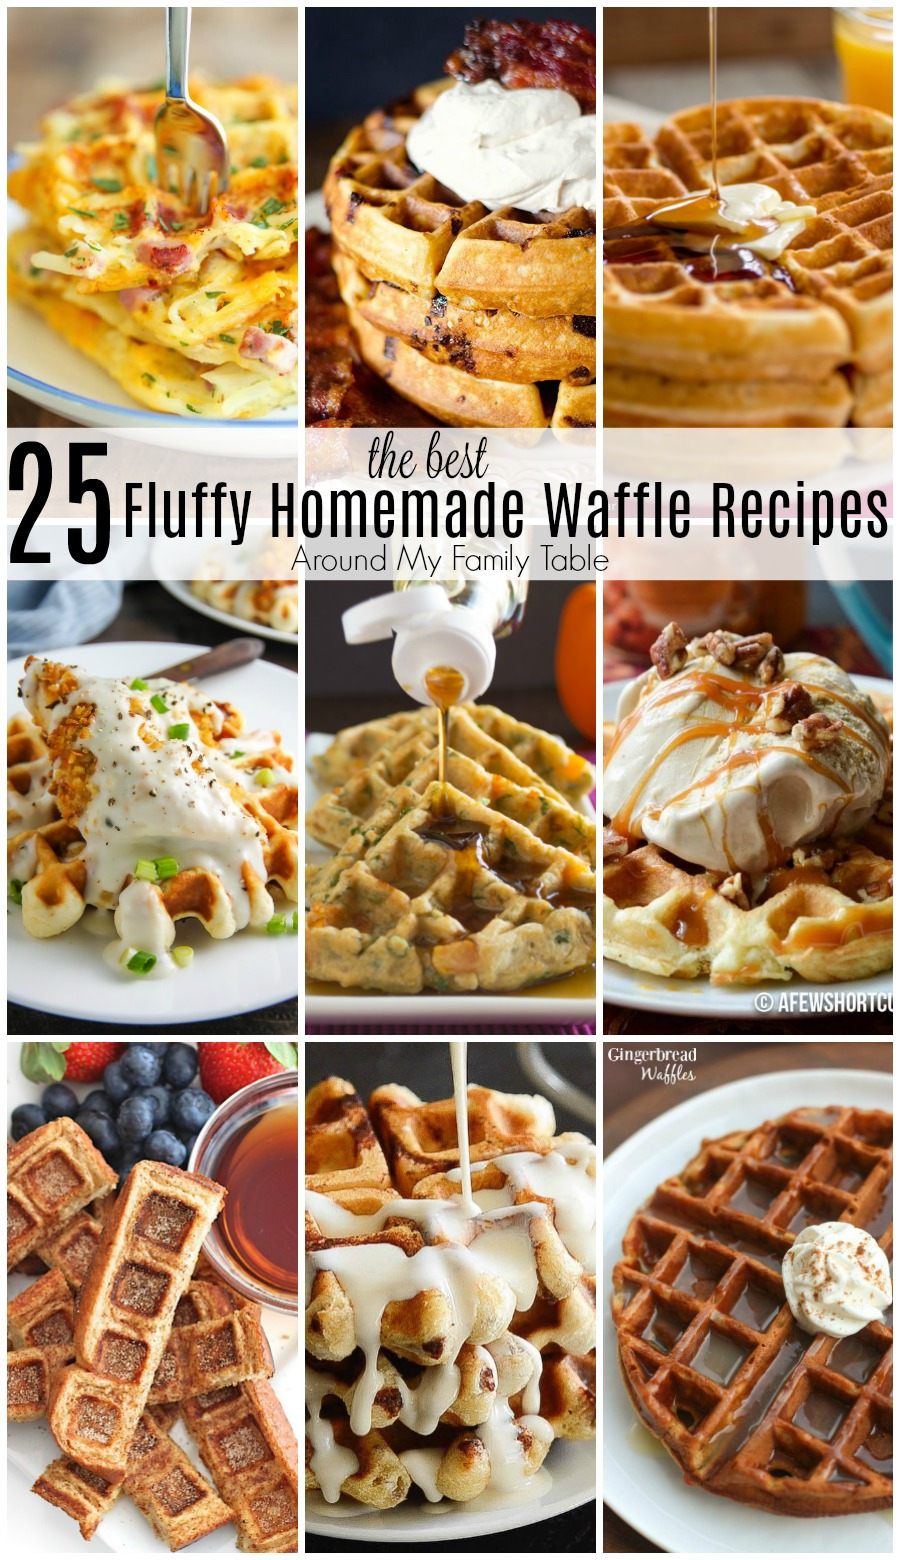 Weekends demand waffles!  It's a thing...promise.  So, I've gathered 25 of the best homemade waffle recipes for a delicious breakfast the whole family will love.